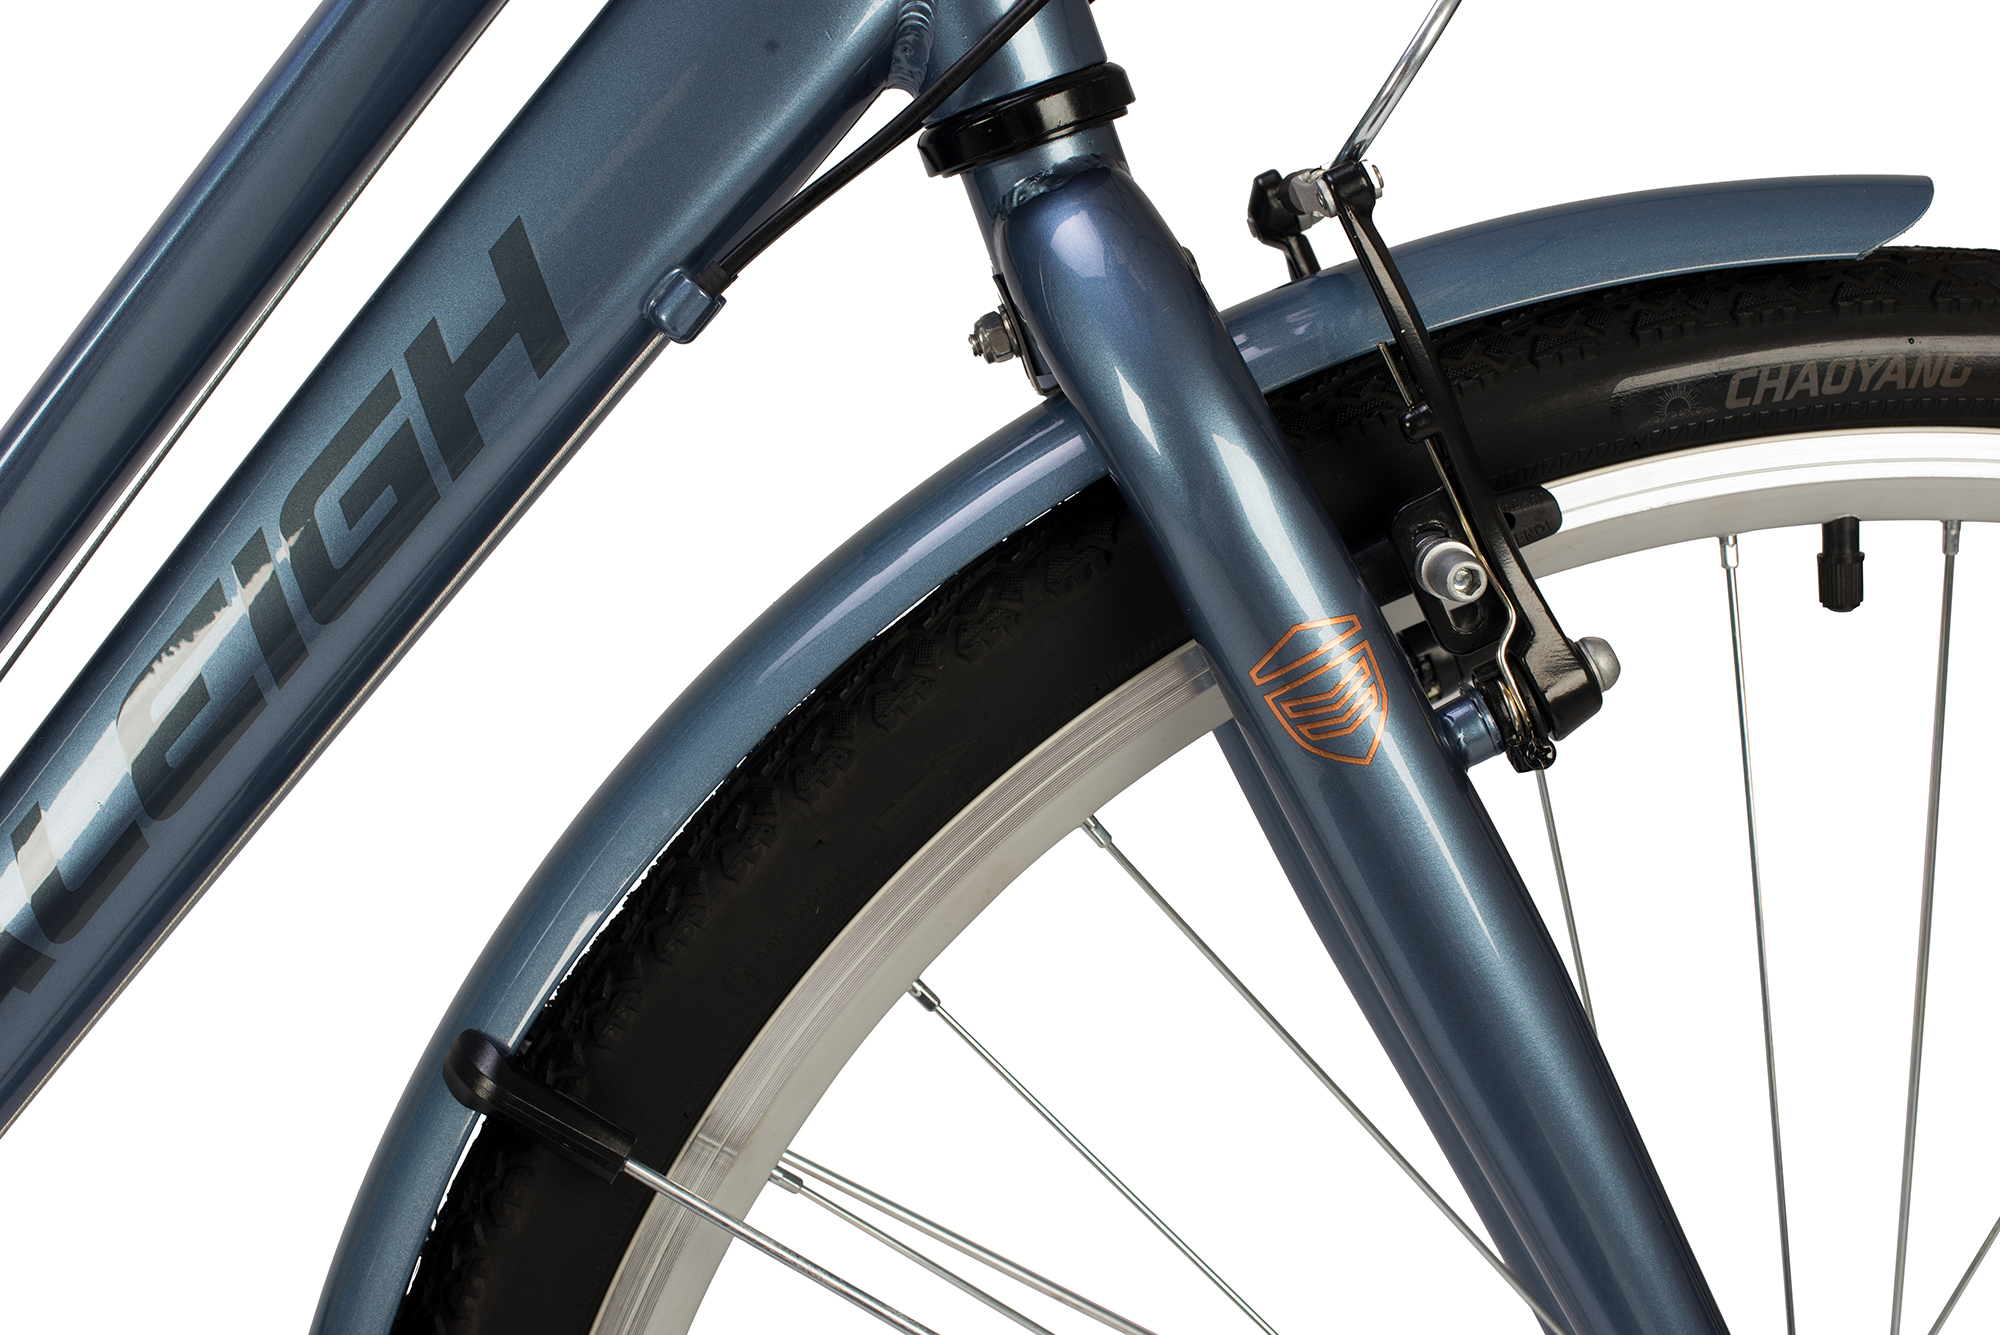 View of the front wheel and brakes on the Raleigh Pioneer low step bike in grey